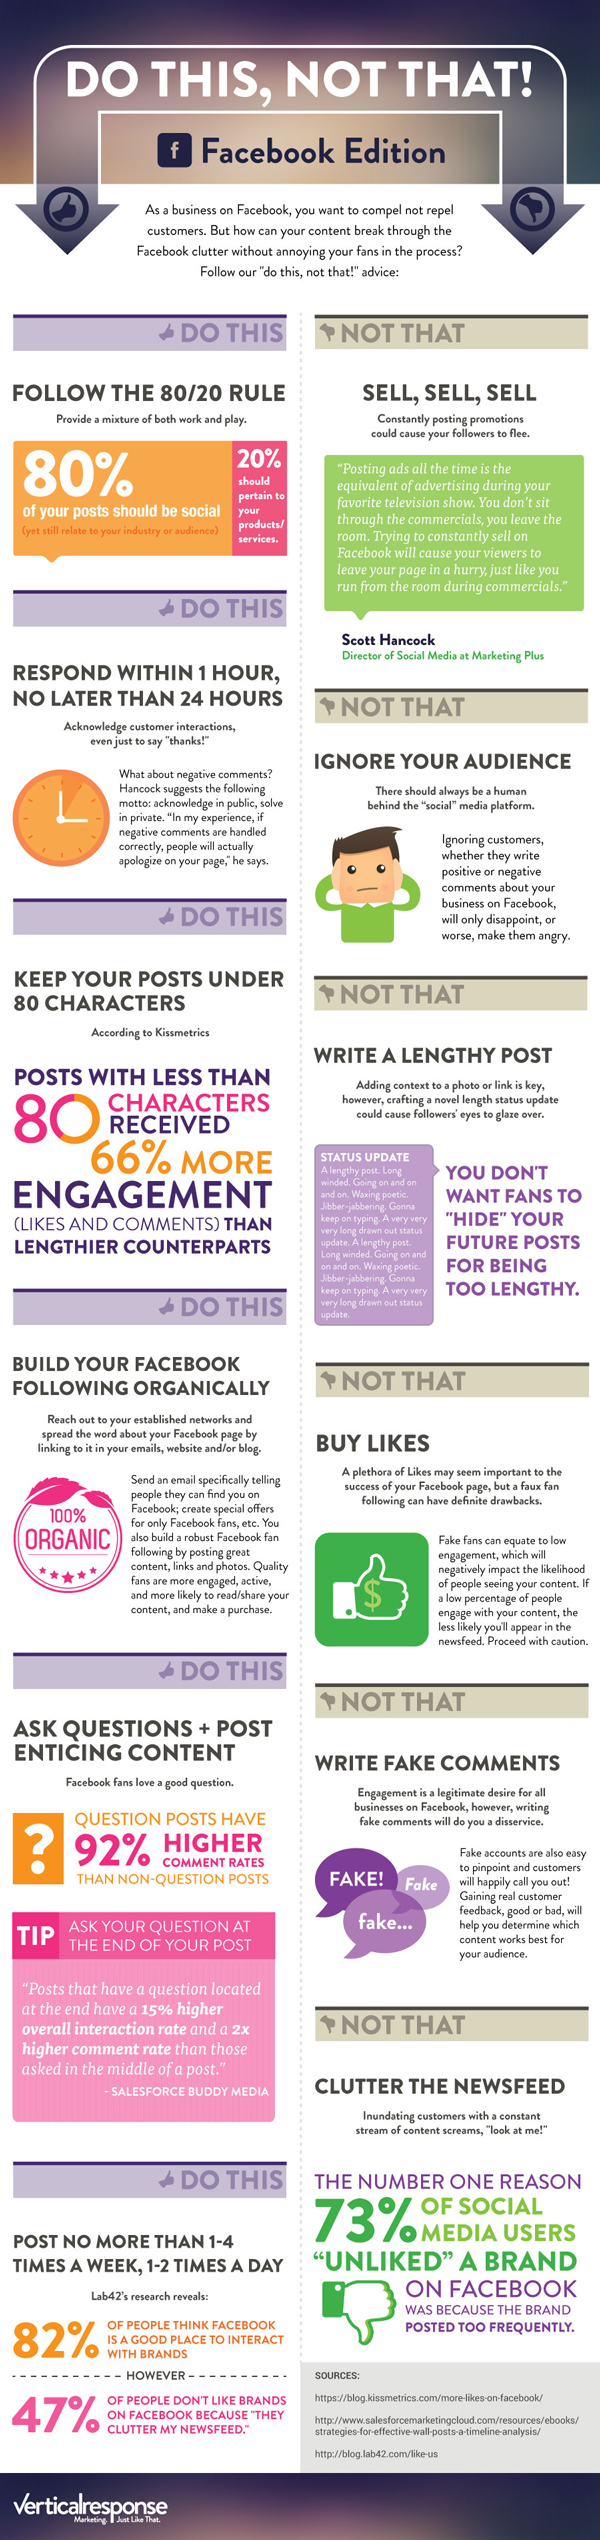 do-this-not-that-facebook-edition-(infographic)